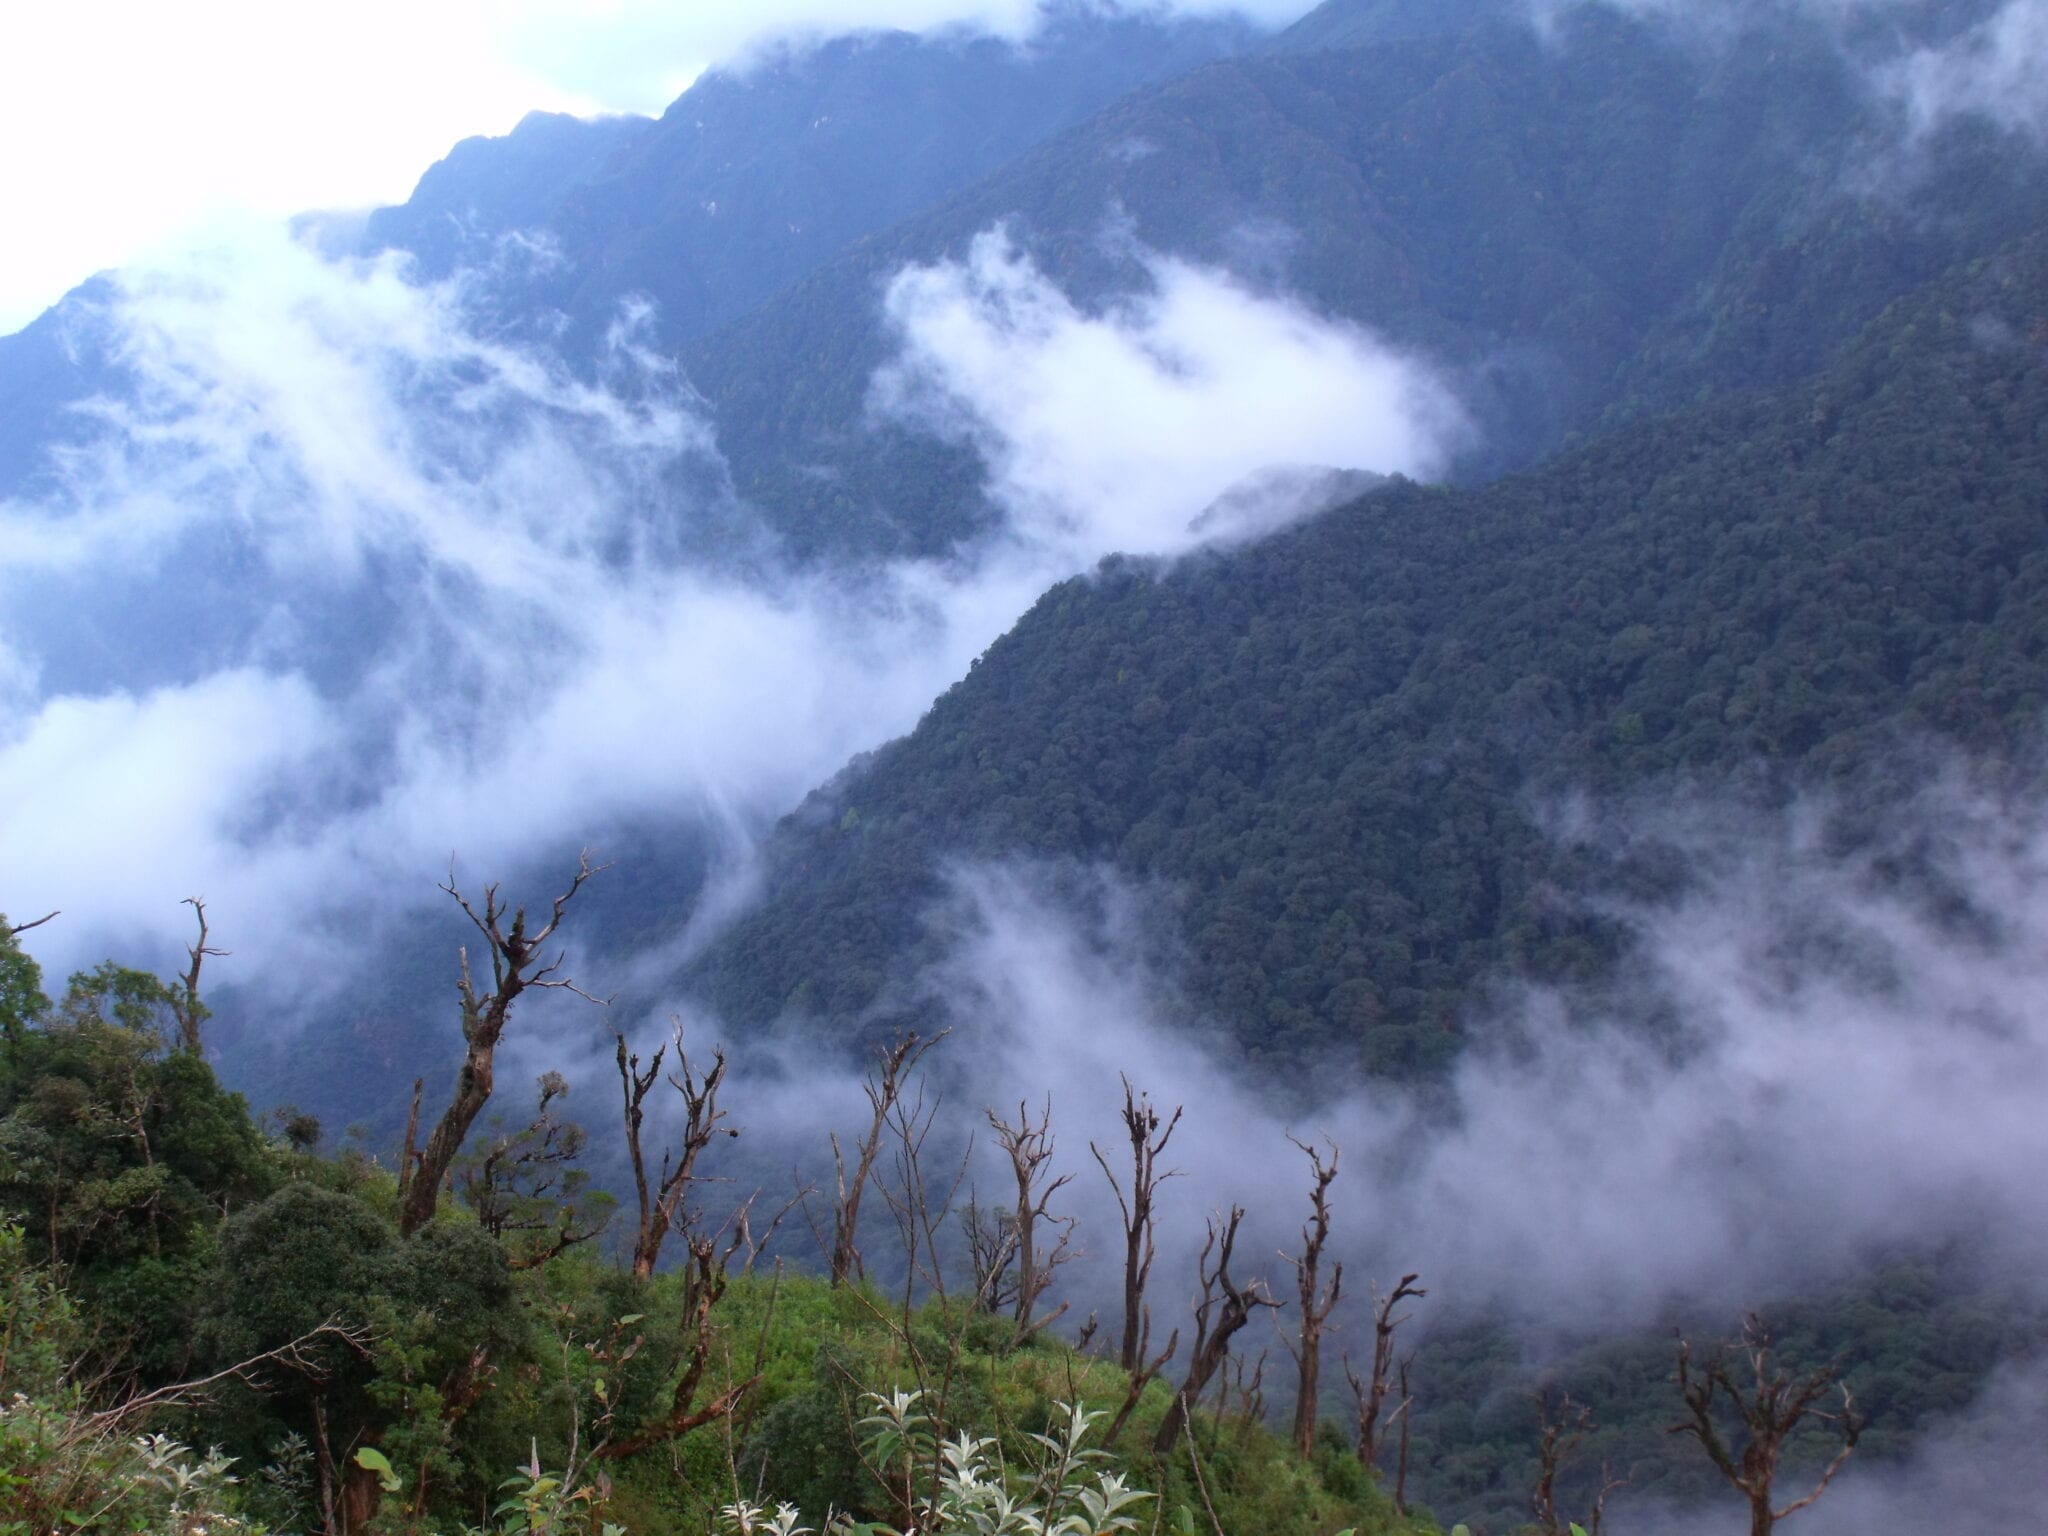 Image of the Mountains in Hoàng Liên National Park in Vietnam